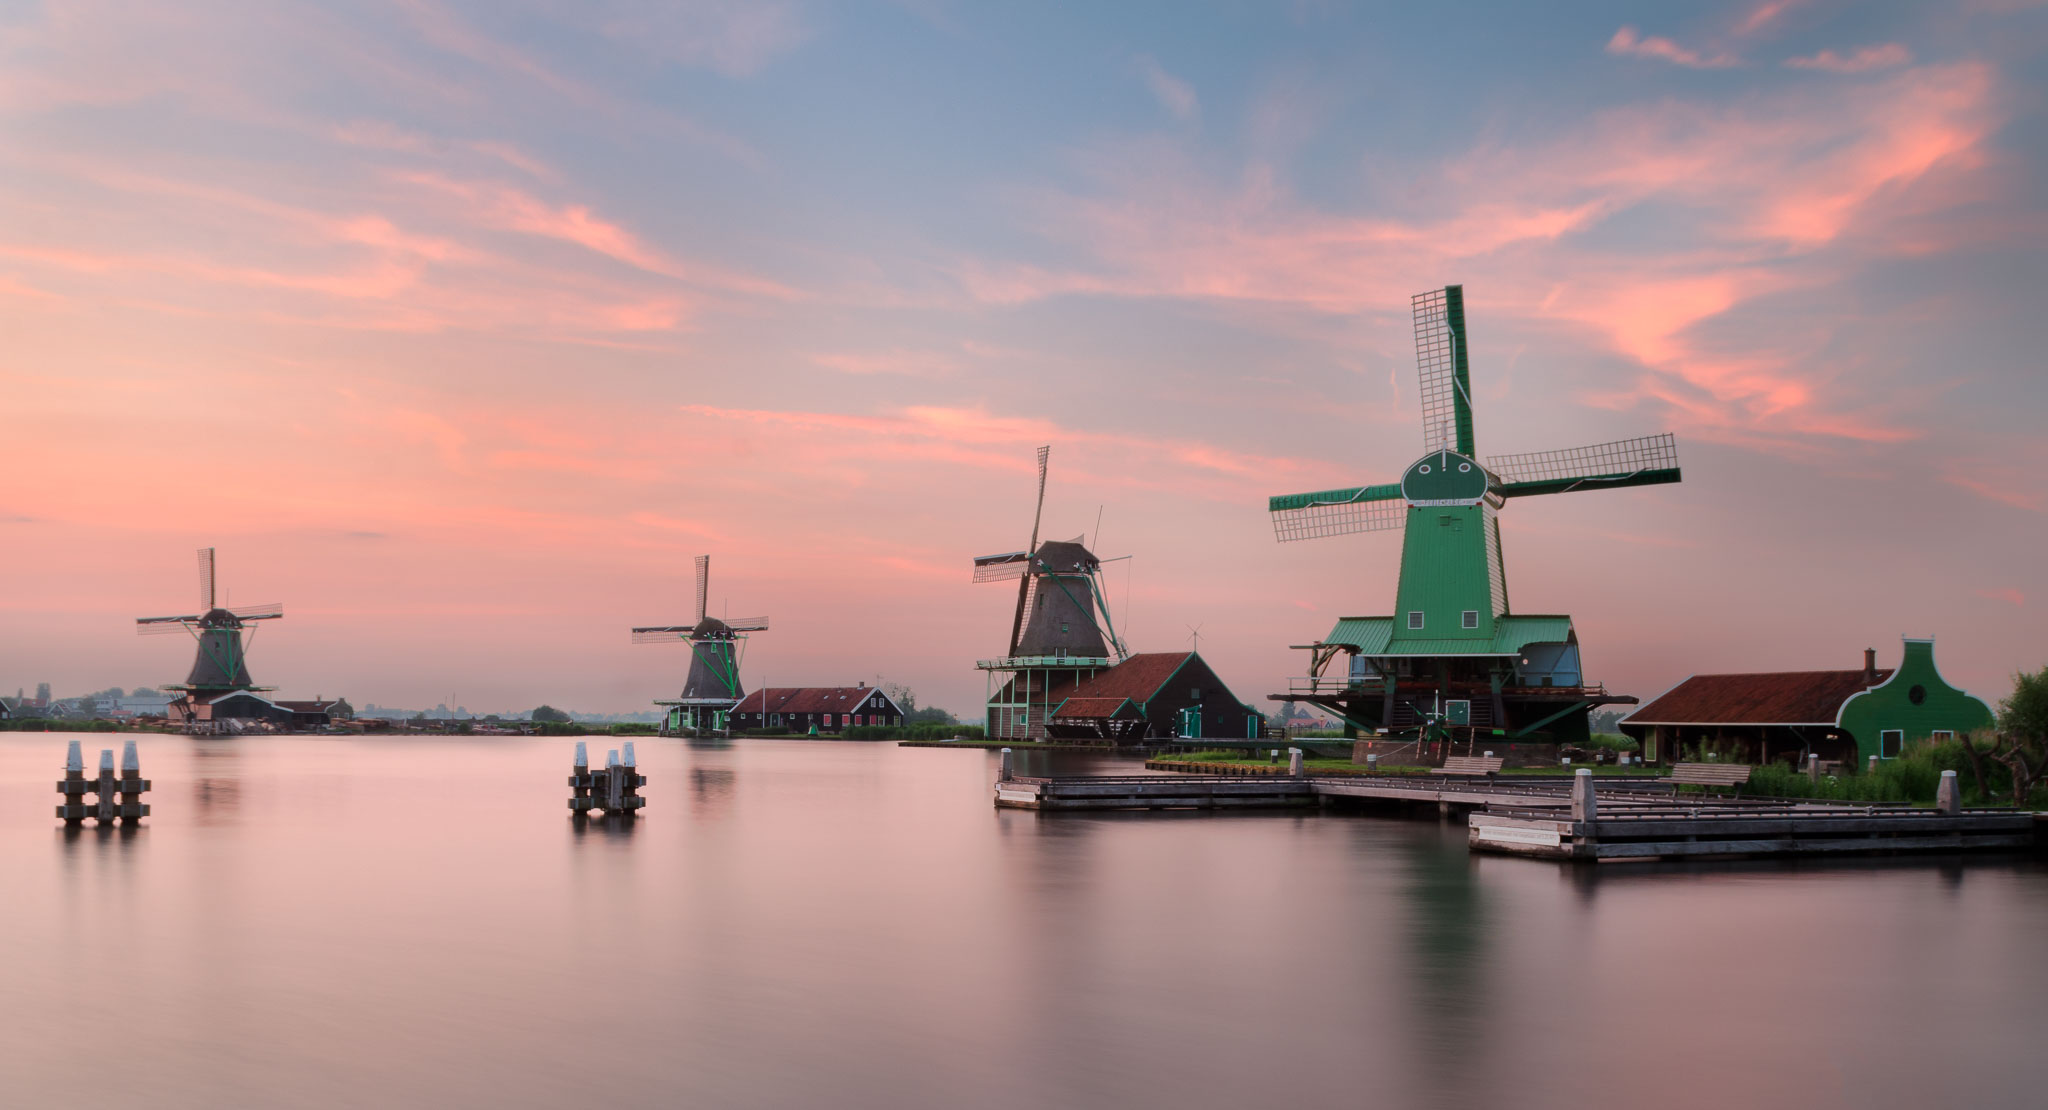 The mills of the Zaanse Schans, Netherlands